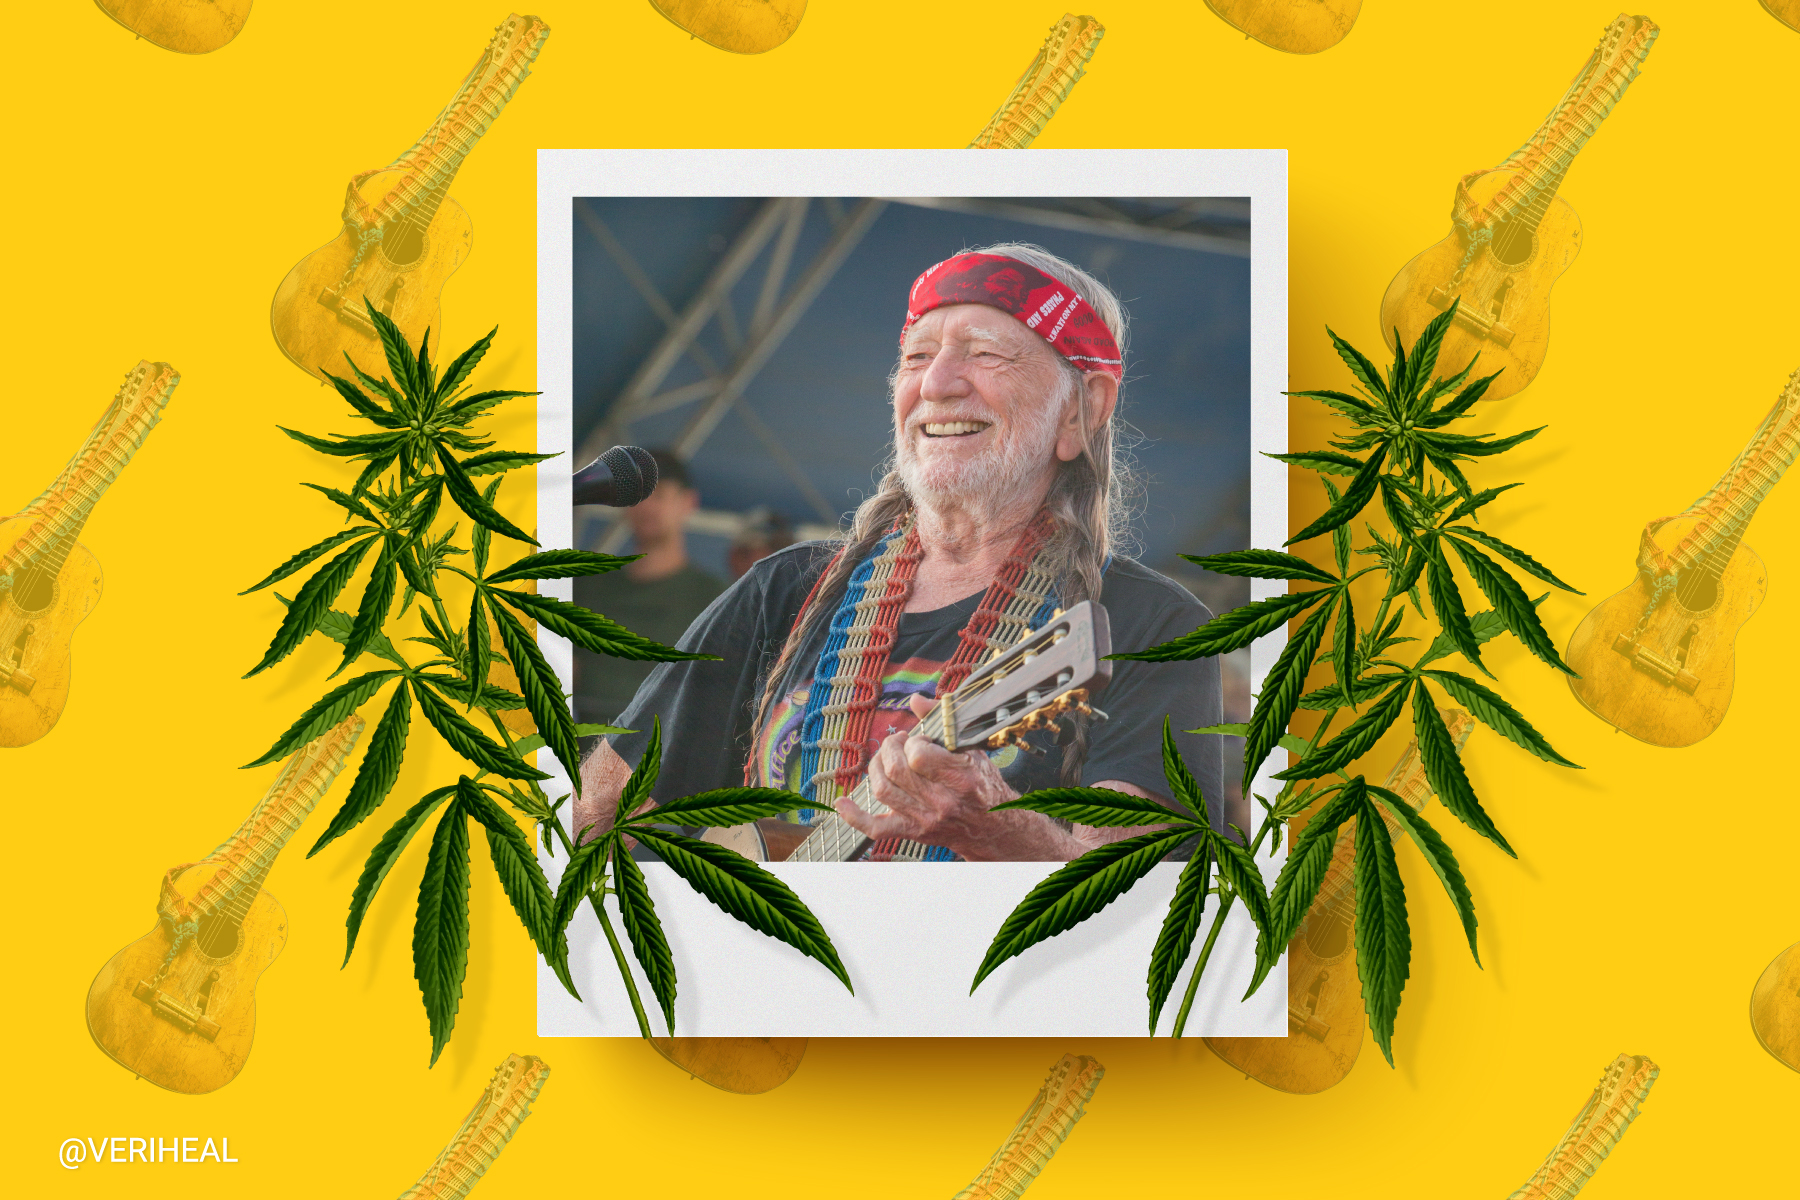 About Willie Nelson and His Contribution to Cannabis Culture